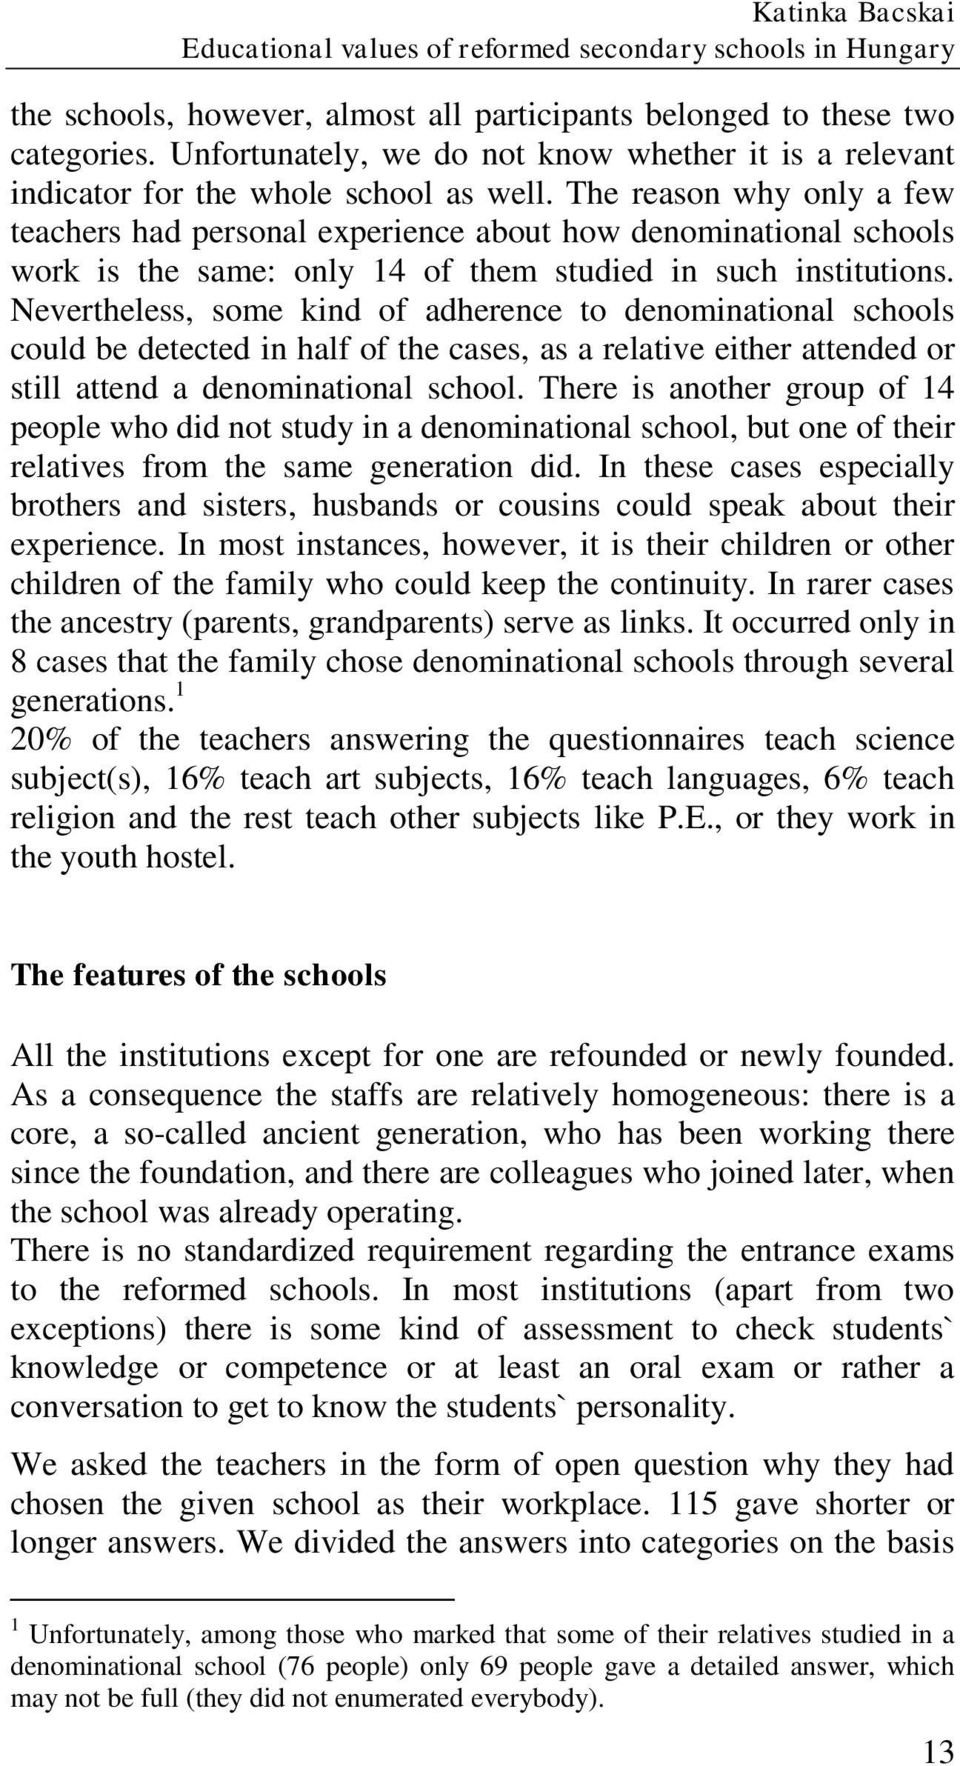 The reason why only a few teachers had personal experience about how denominational schools work is the same: only 14 of them studied in such institutions.